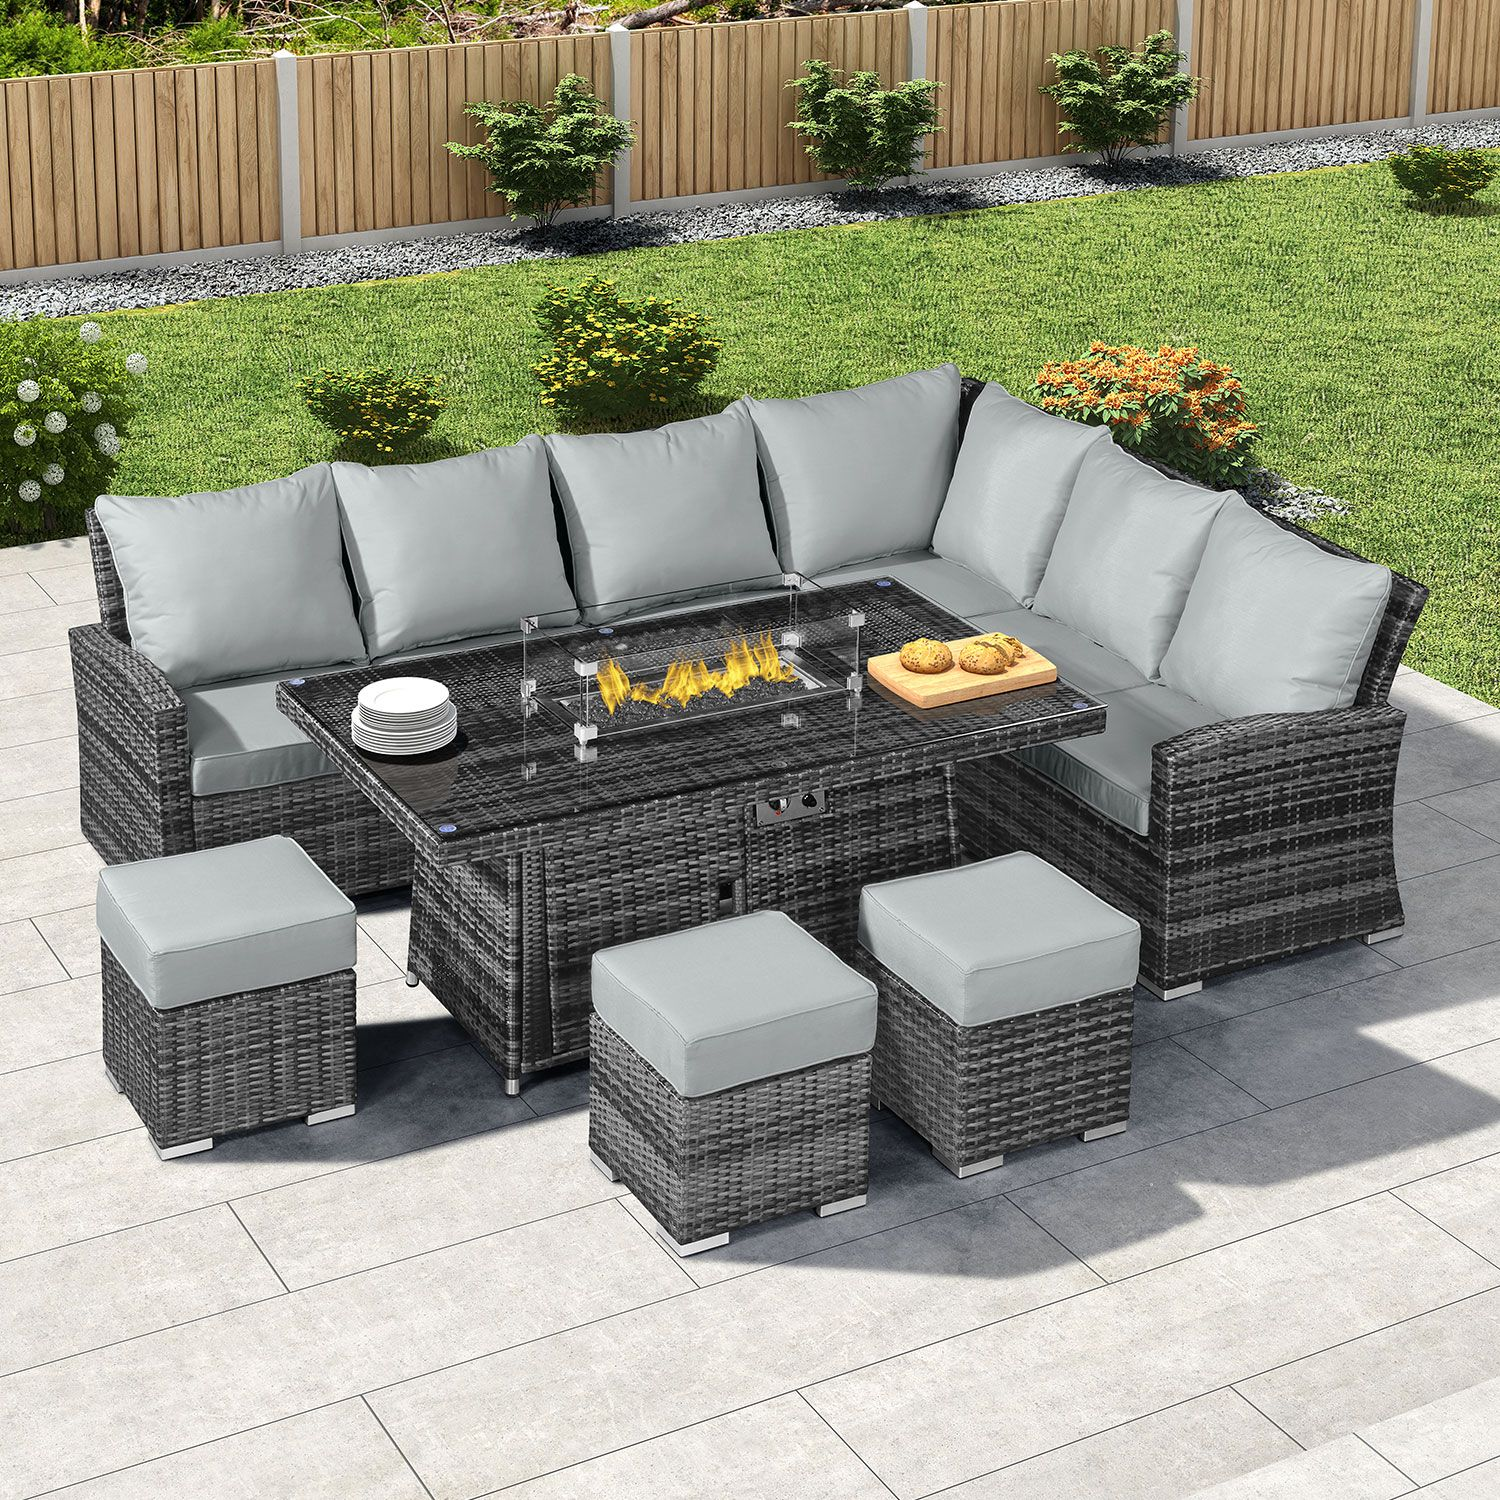 Cambridge Right Hand Casual Dining Corner Sofa Set With Firepit Table In 2020 Fire Pit Table Corner Sofa Set Corner Dining Set